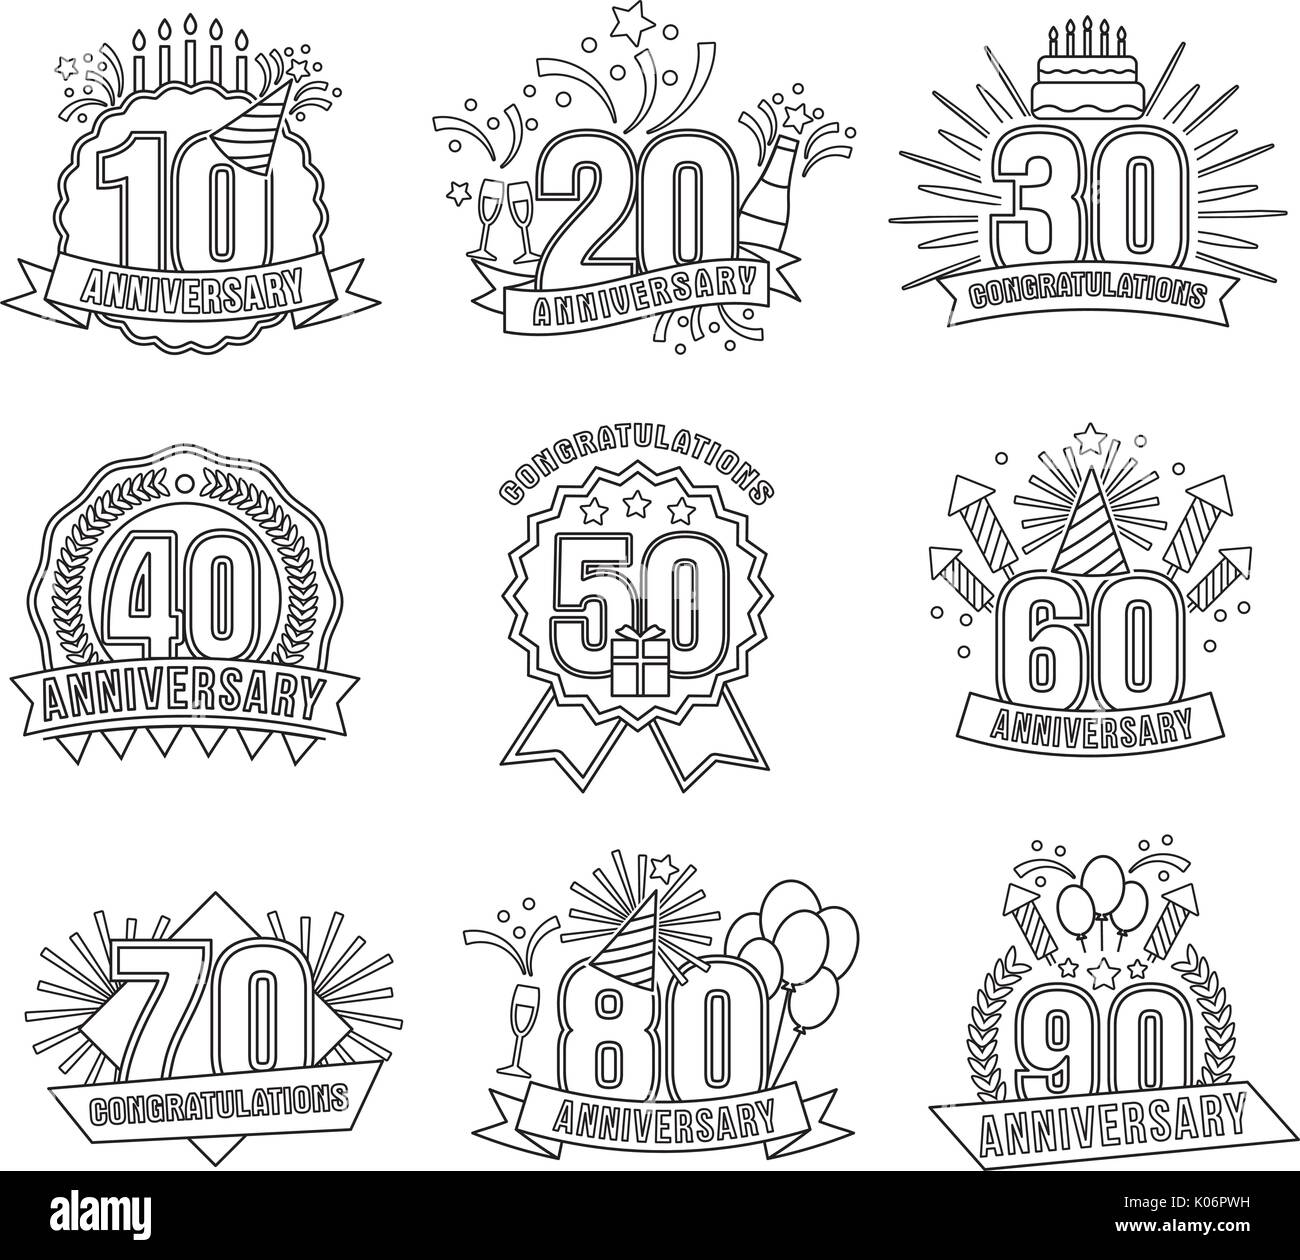 Anniversary coloring stickers style line art set Stock Vector